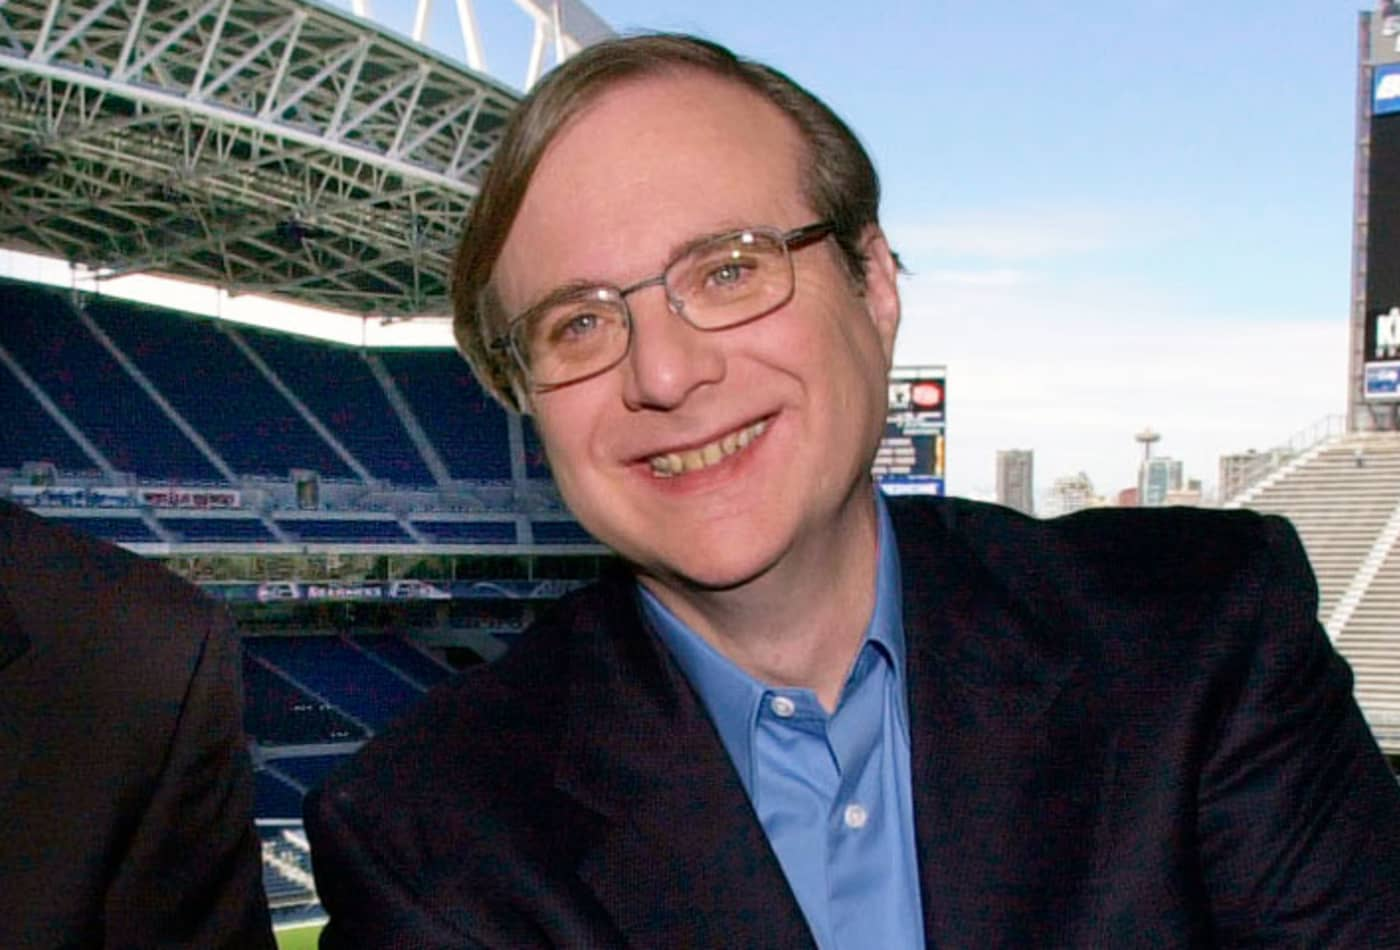 Microsoft co-founder Paul Allen dies of cancer at age 65